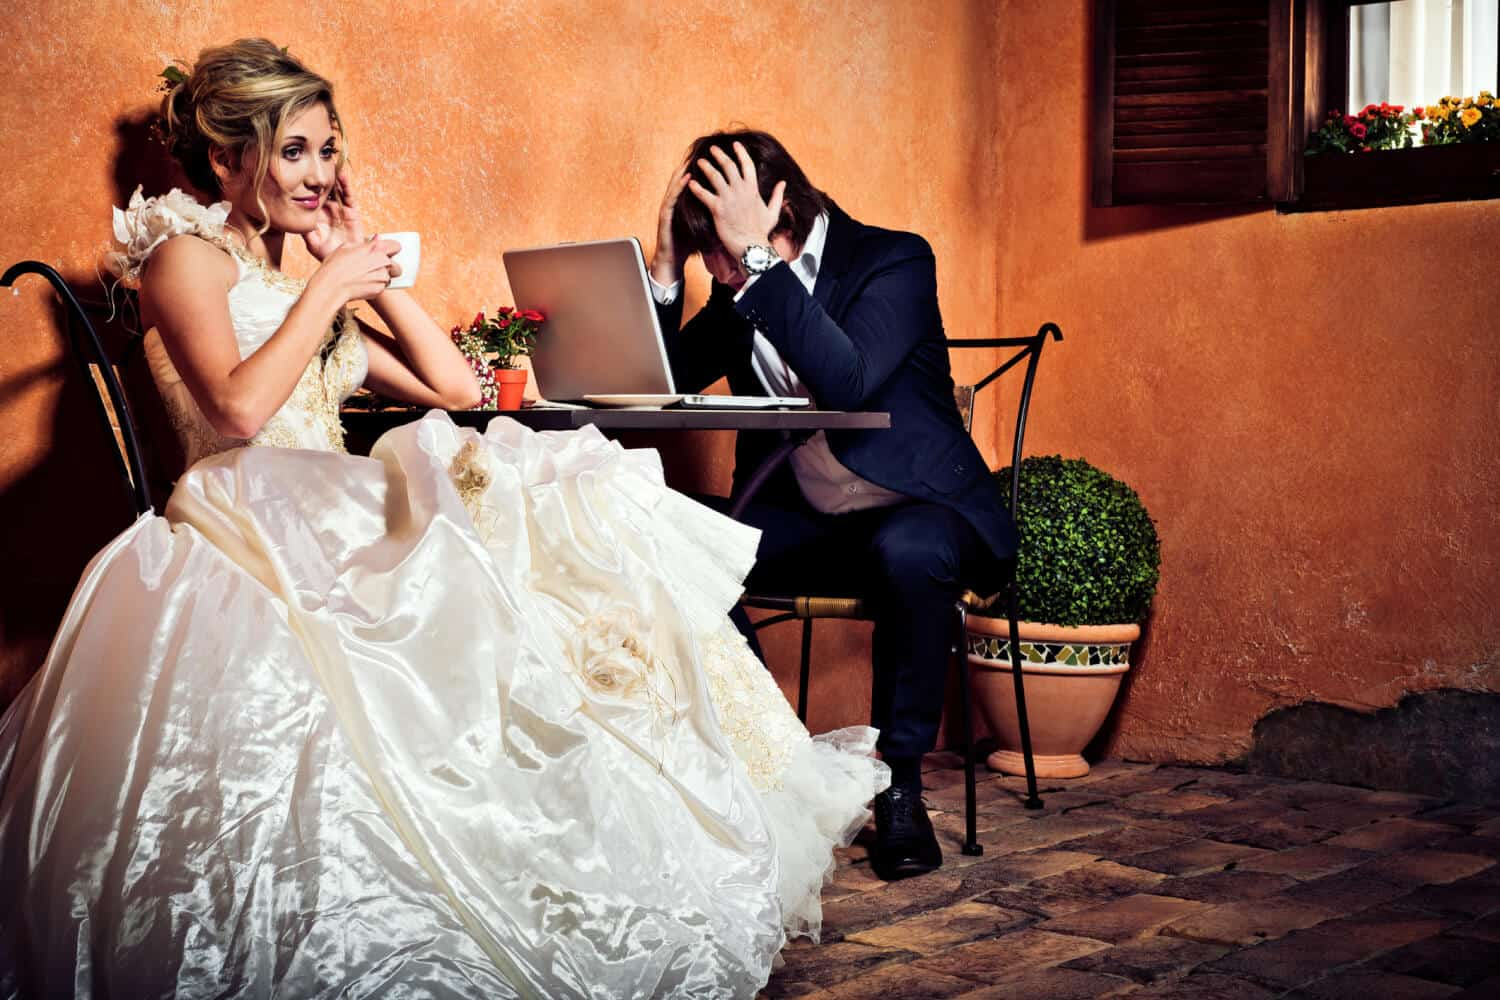 Money and marriage statistics show why this newlywed couple is stressed: It's the main cause of divorce